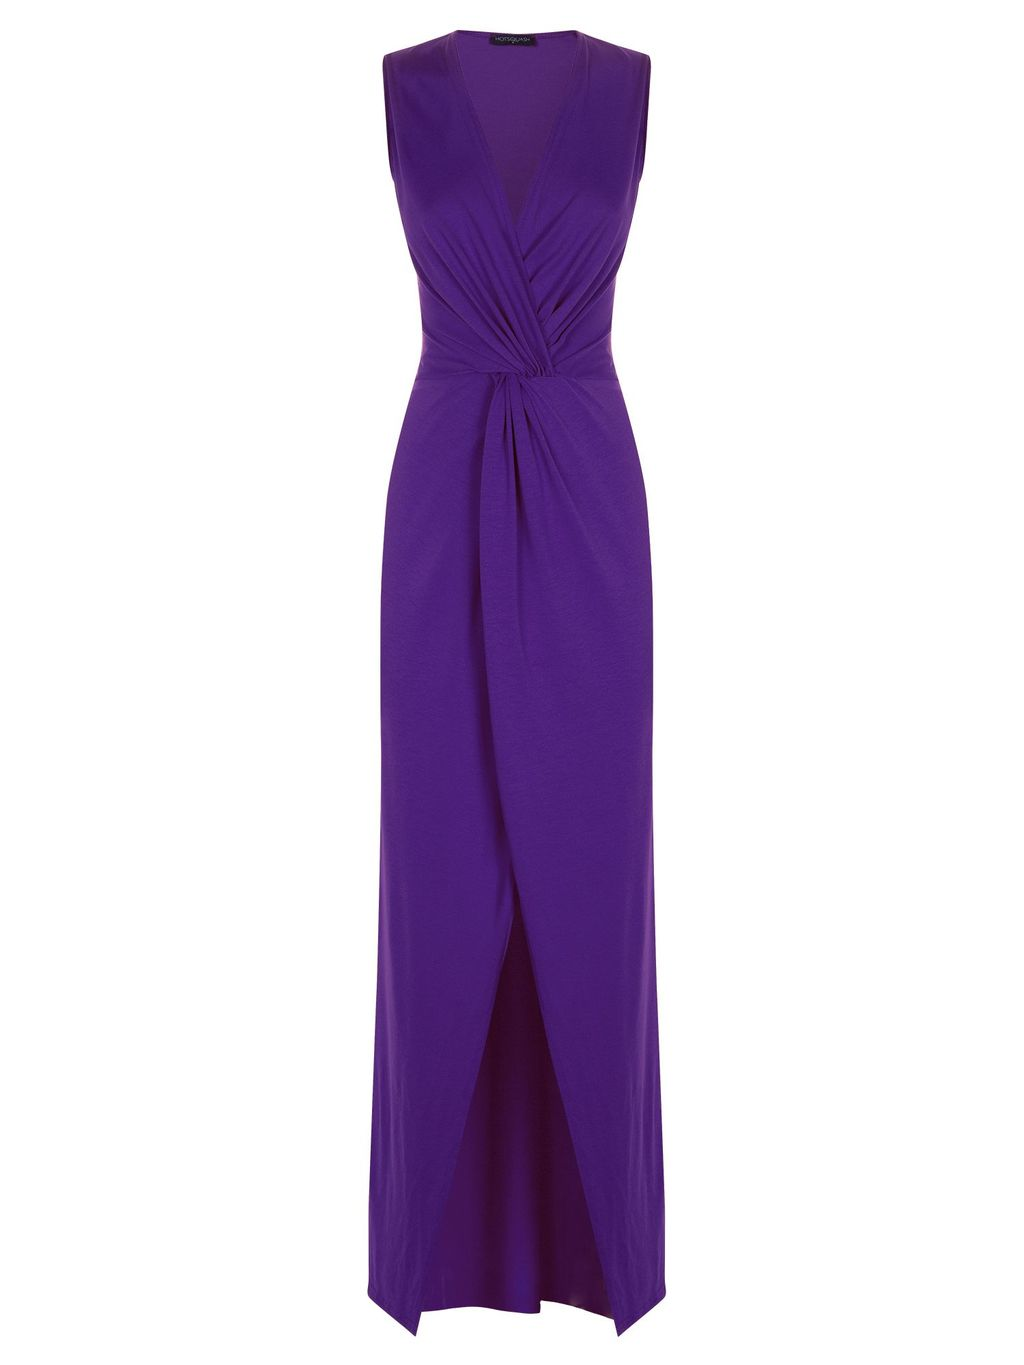 Long Elegant Maxi Dress With Knot Detail, Purple - style: faux wrap/wrap; neckline: v-neck; pattern: plain; sleeve style: sleeveless; waist detail: flattering waist detail; hip detail: draws attention to hips; predominant colour: purple; occasions: evening, occasion; length: floor length; fit: body skimming; fibres: polyester/polyamide - stretch; sleeve length: sleeveless; pattern type: fabric; texture group: jersey - stretchy/drapey; season: s/s 2015; wardrobe: event